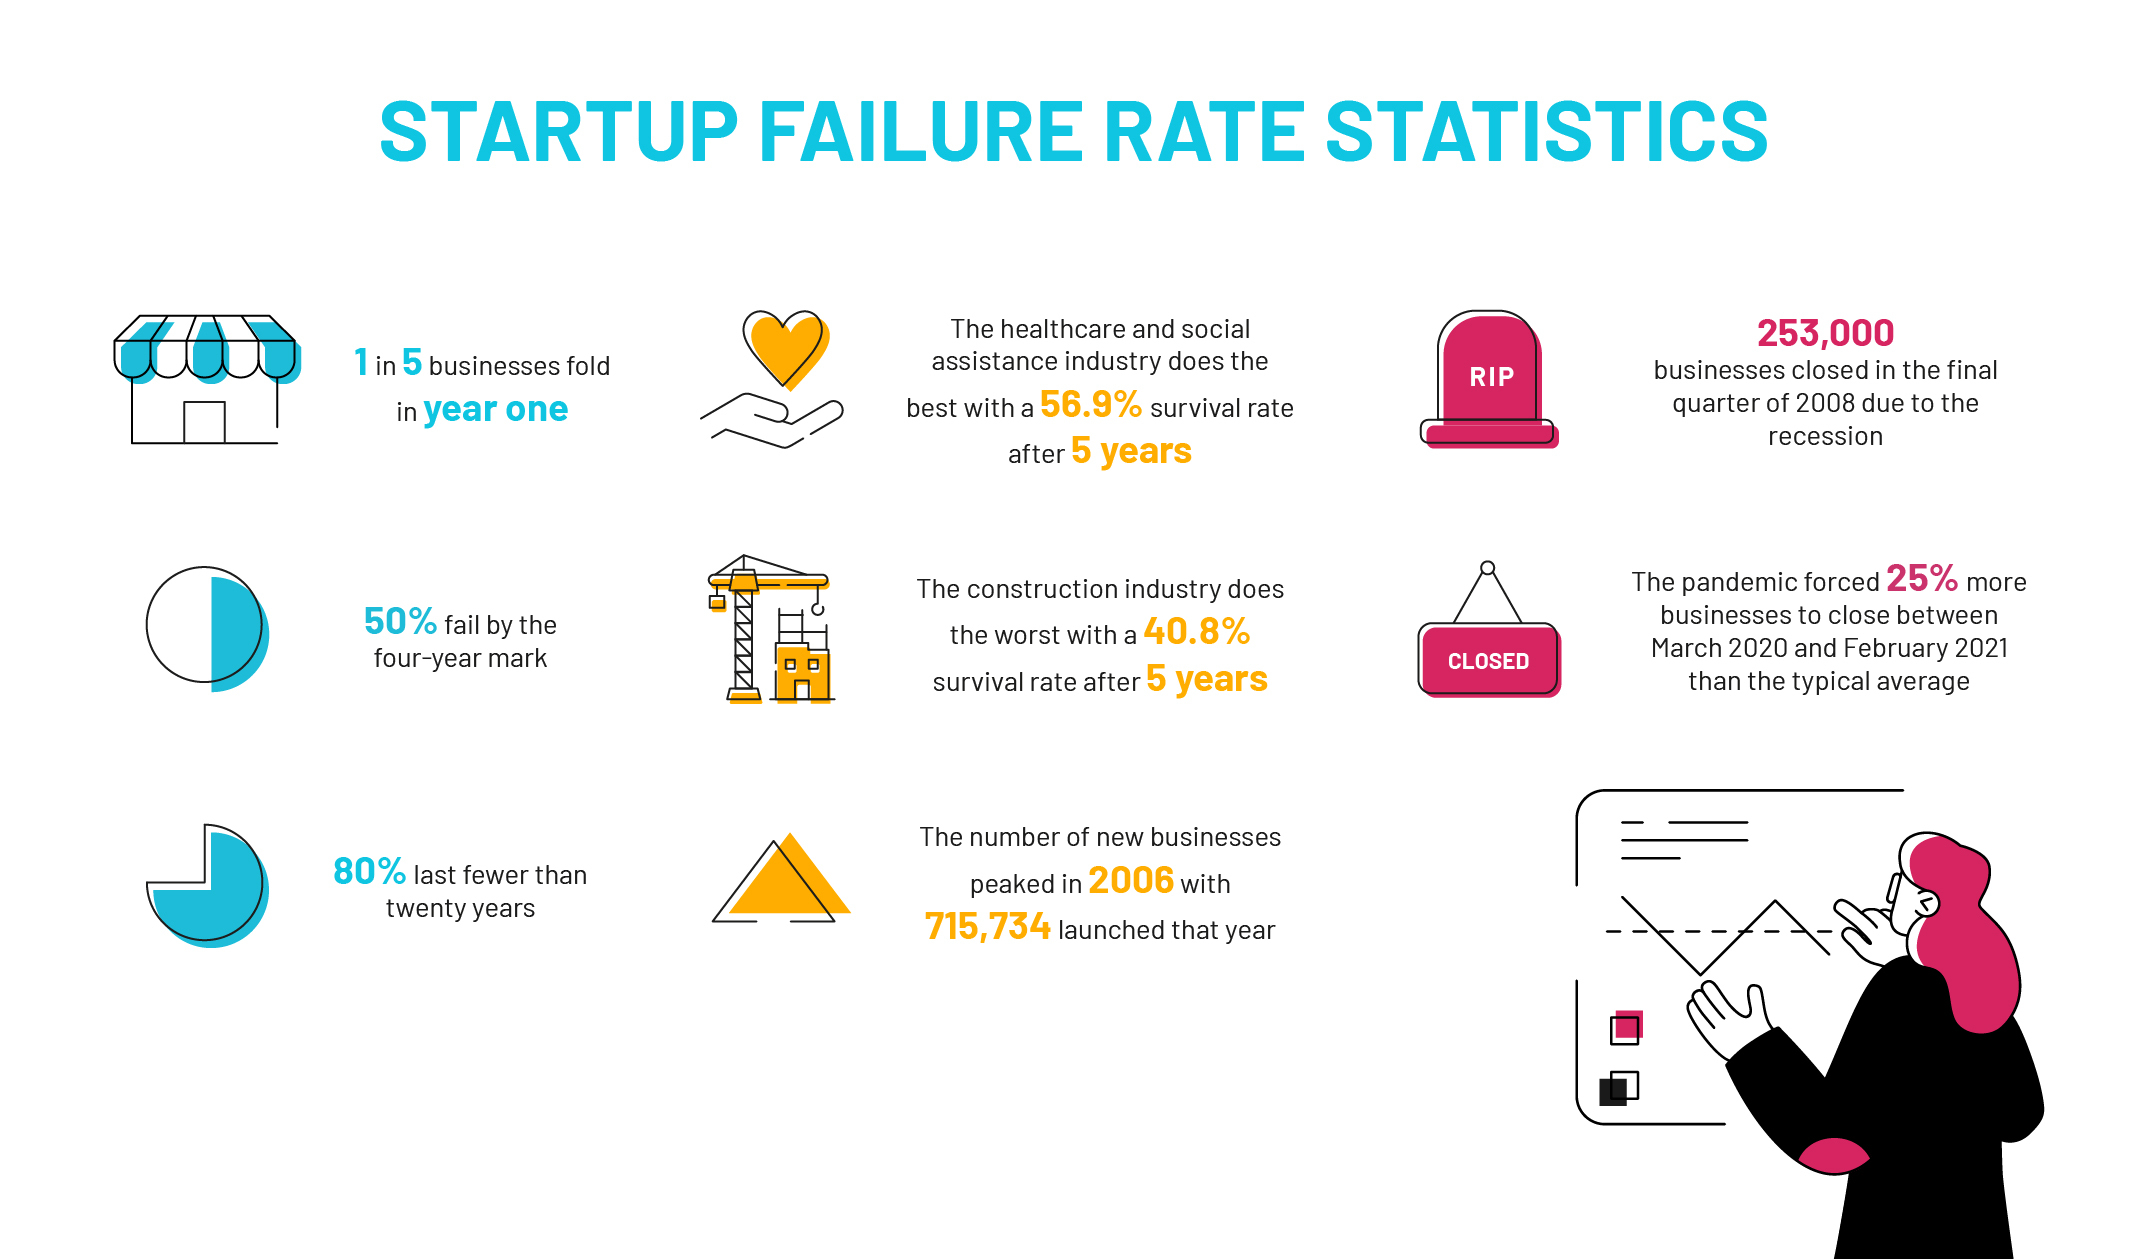 Startup failure rate stats